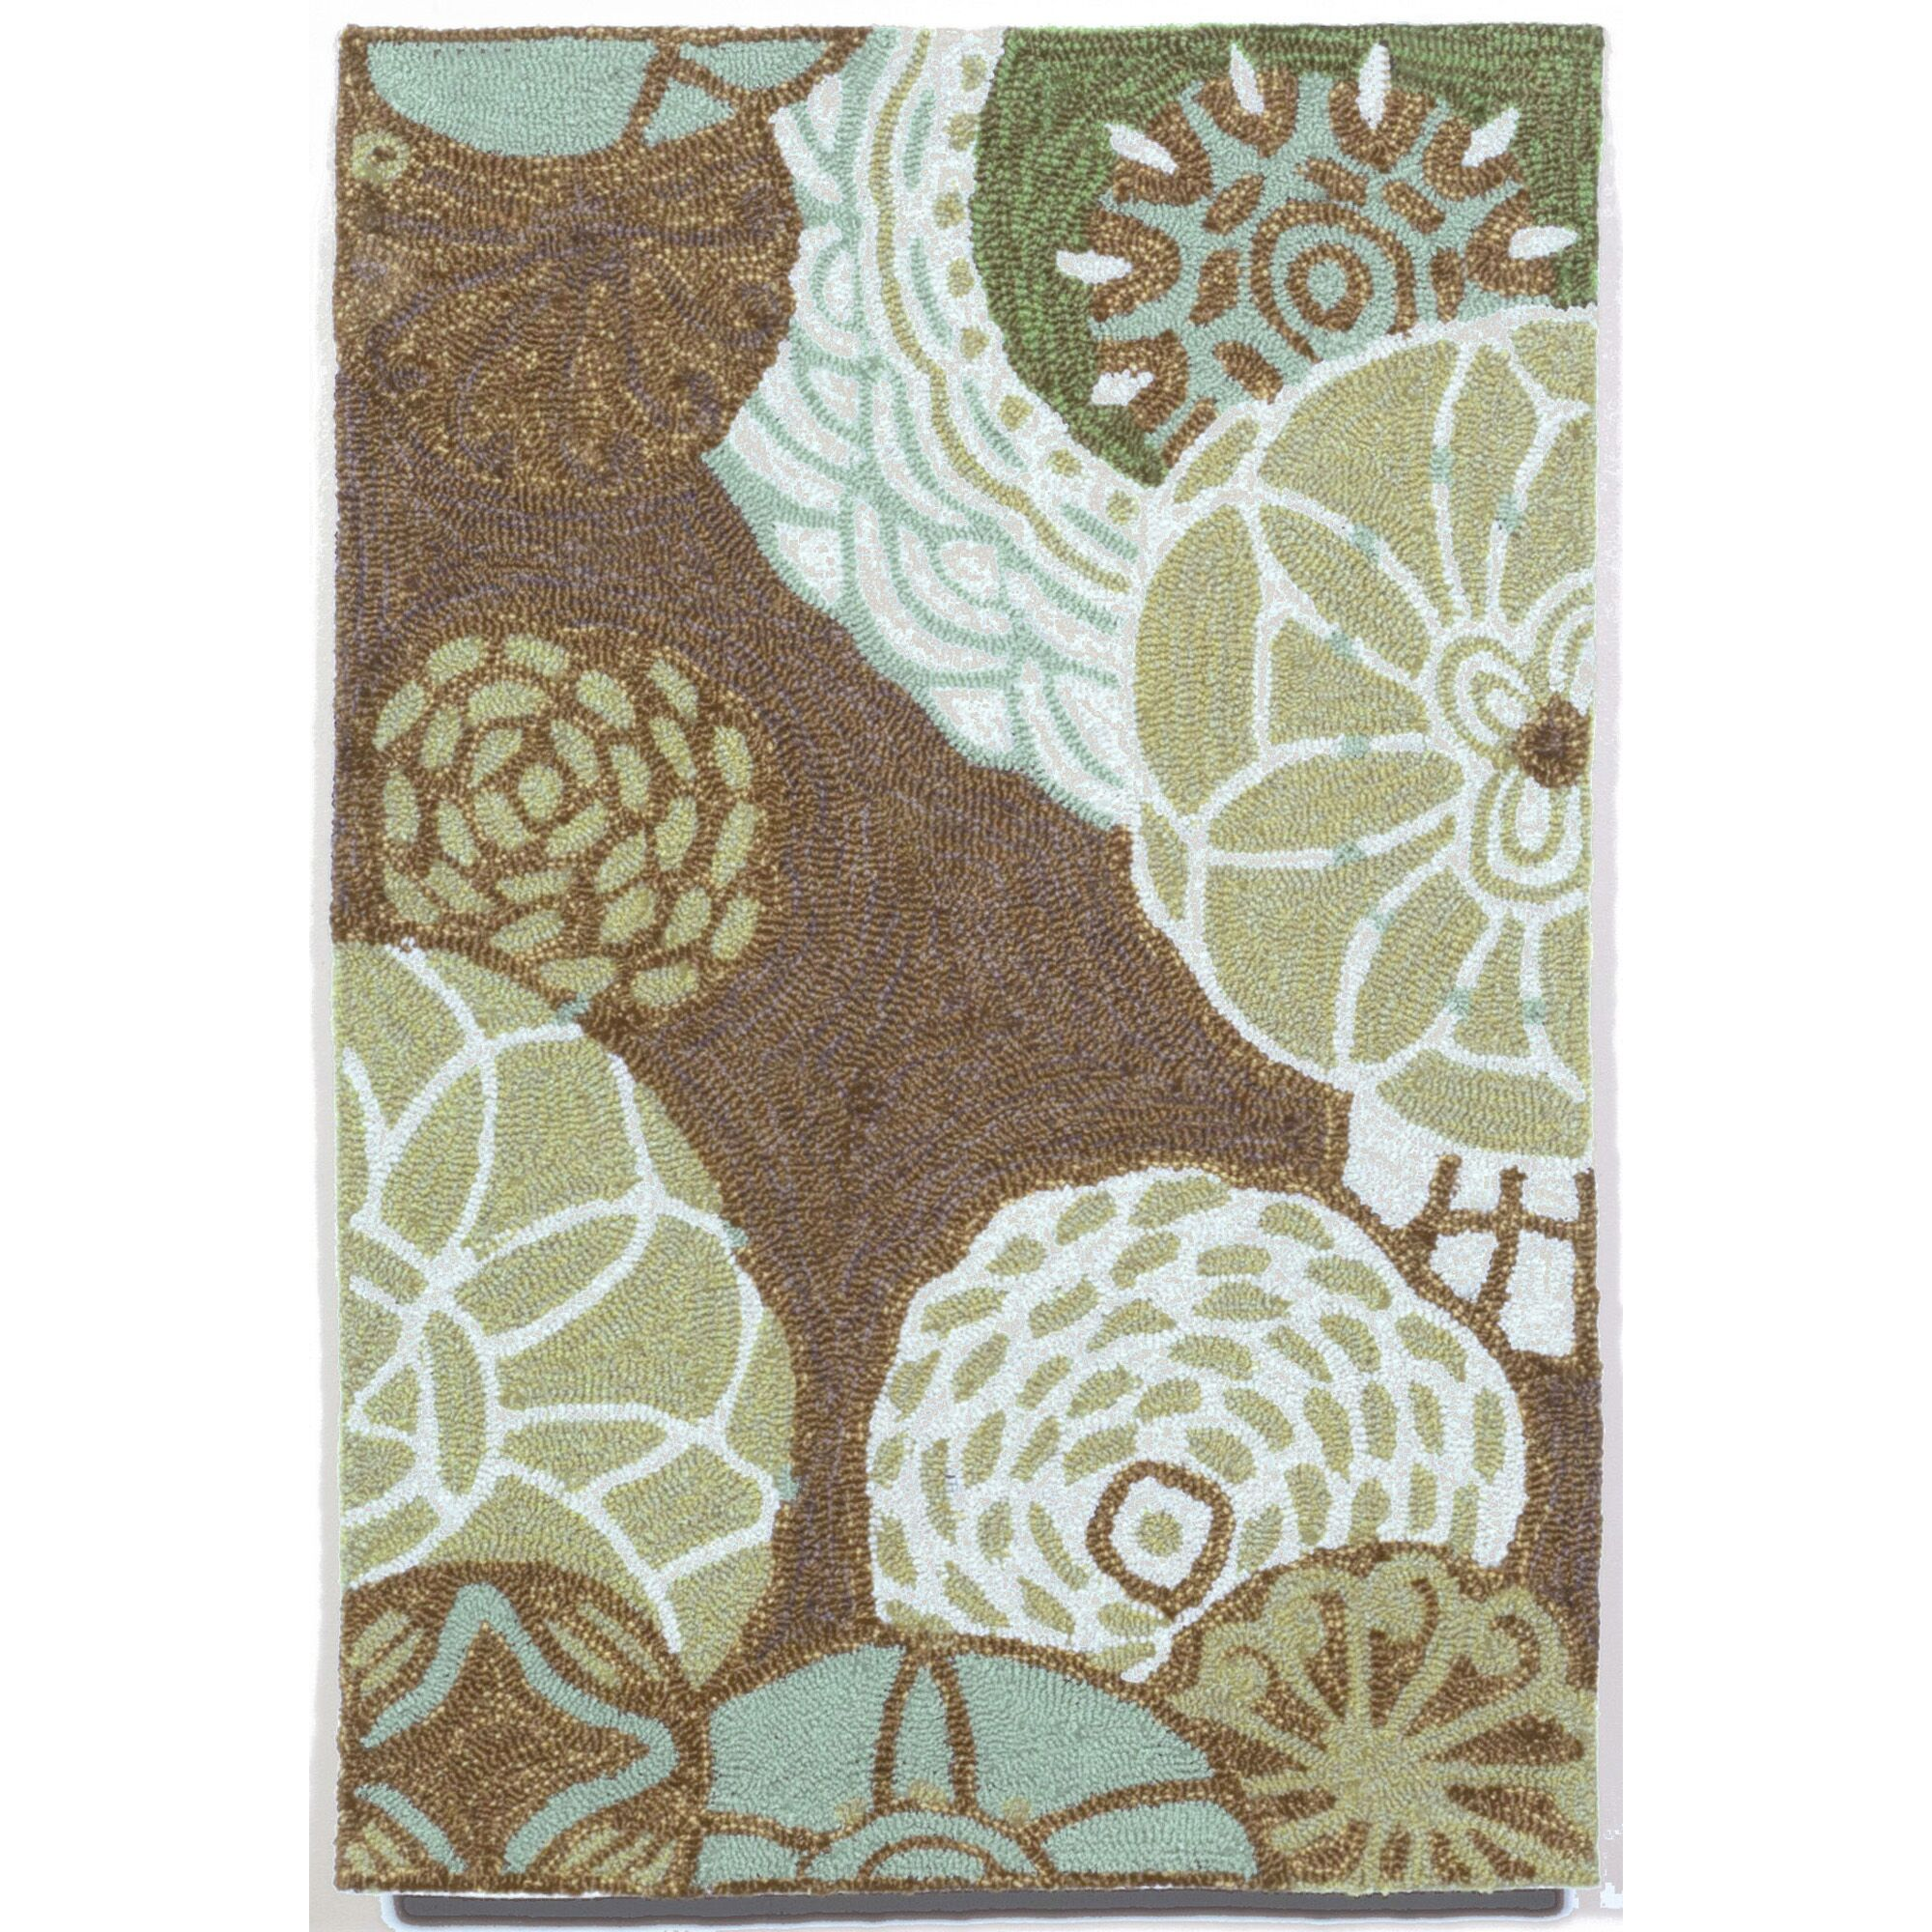 Derby Driftwood Outdoor Area Rug Rug Size: Rectangle 5' x 7'6